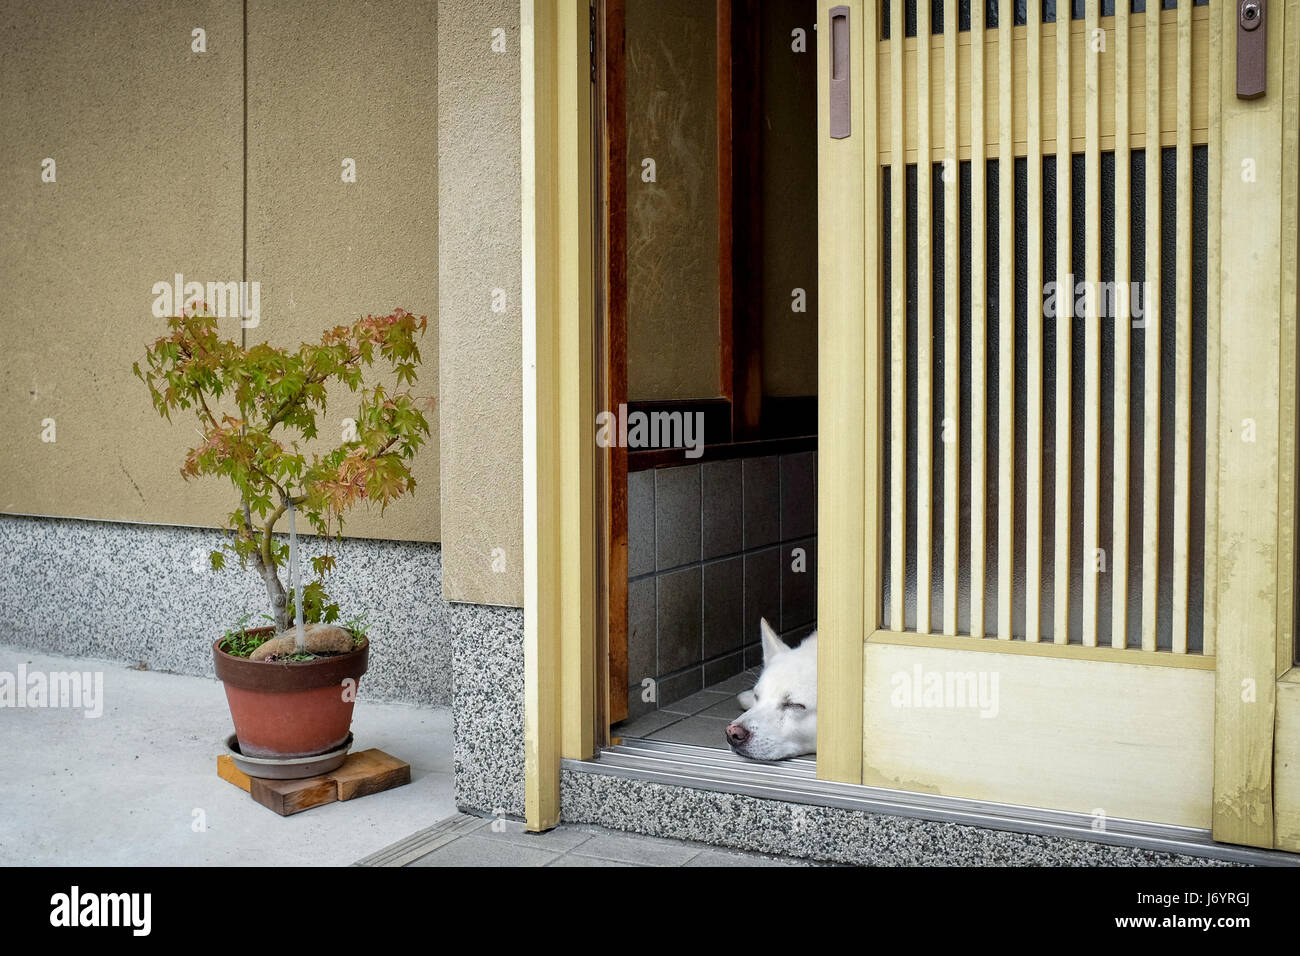 A dog sleeping in the doorway of a Japanese house. - Stock Image